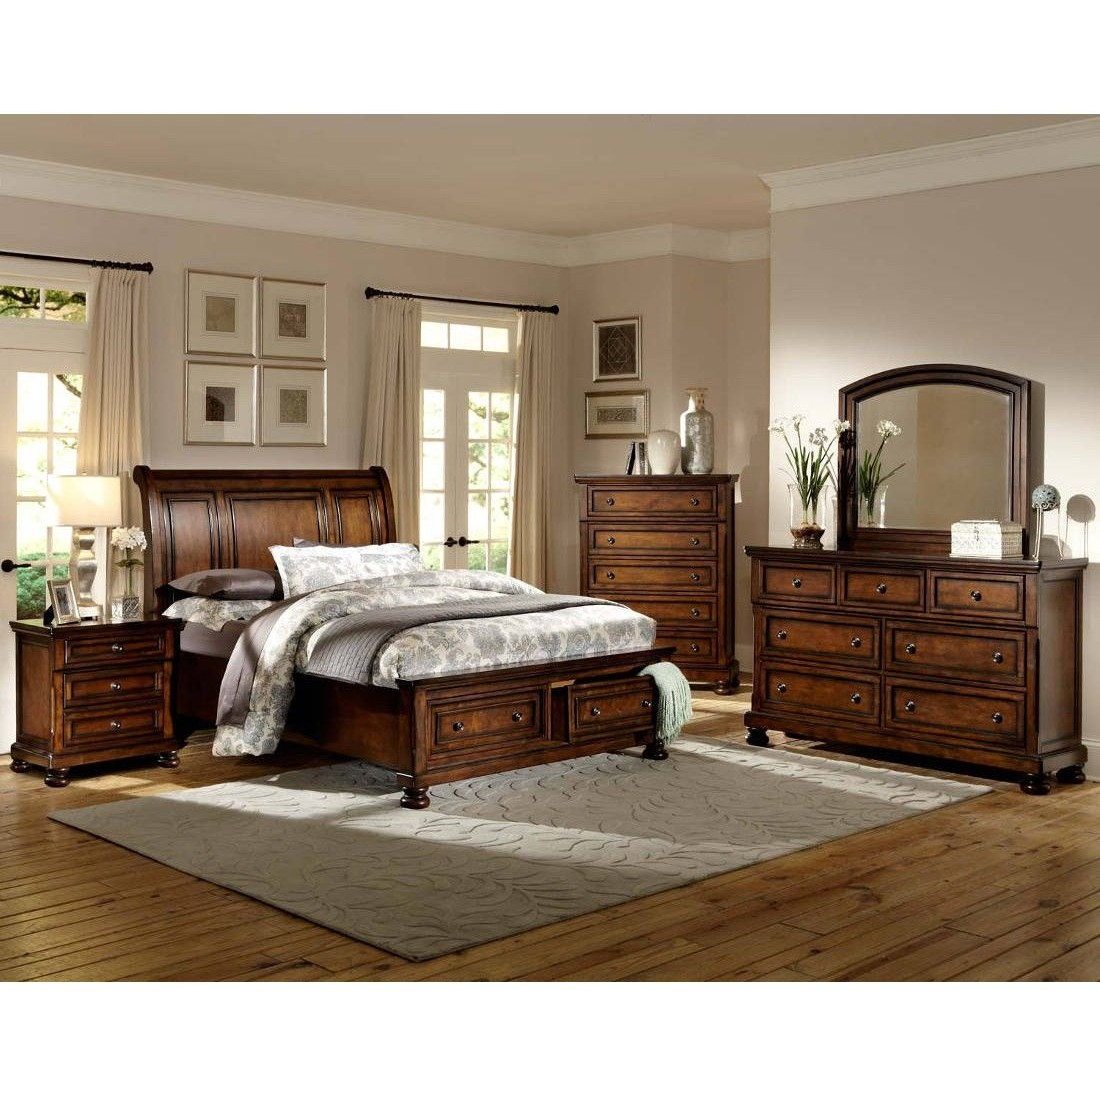 Cumberland Sleigh Platform Bed w/ Footboard Storage by Homelegance